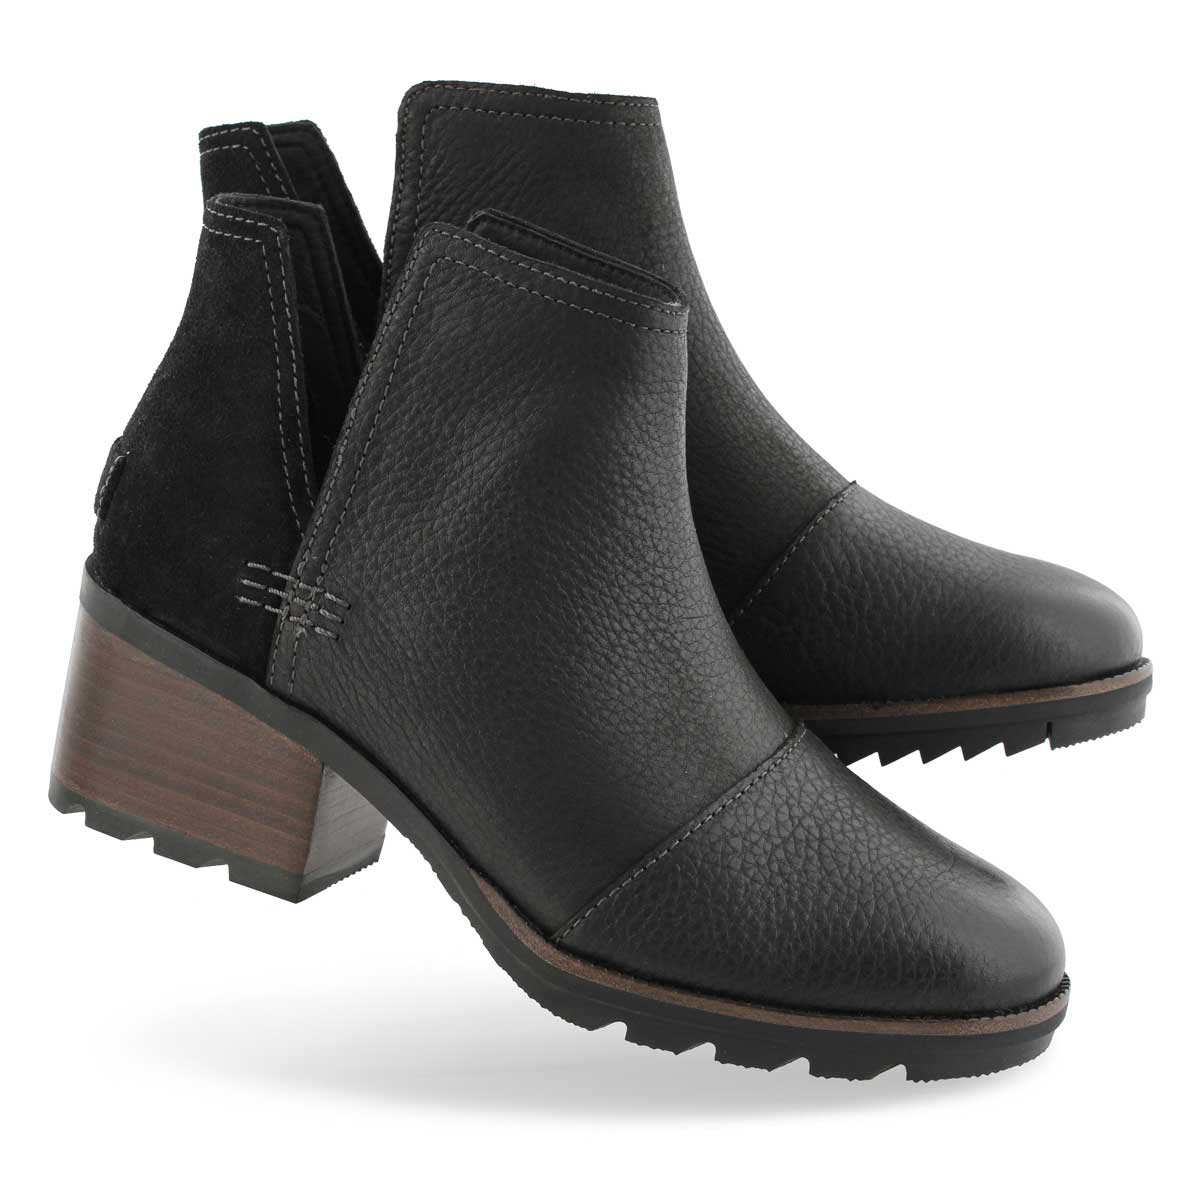 Lds Cate Cut Out black wtpf ankle boot